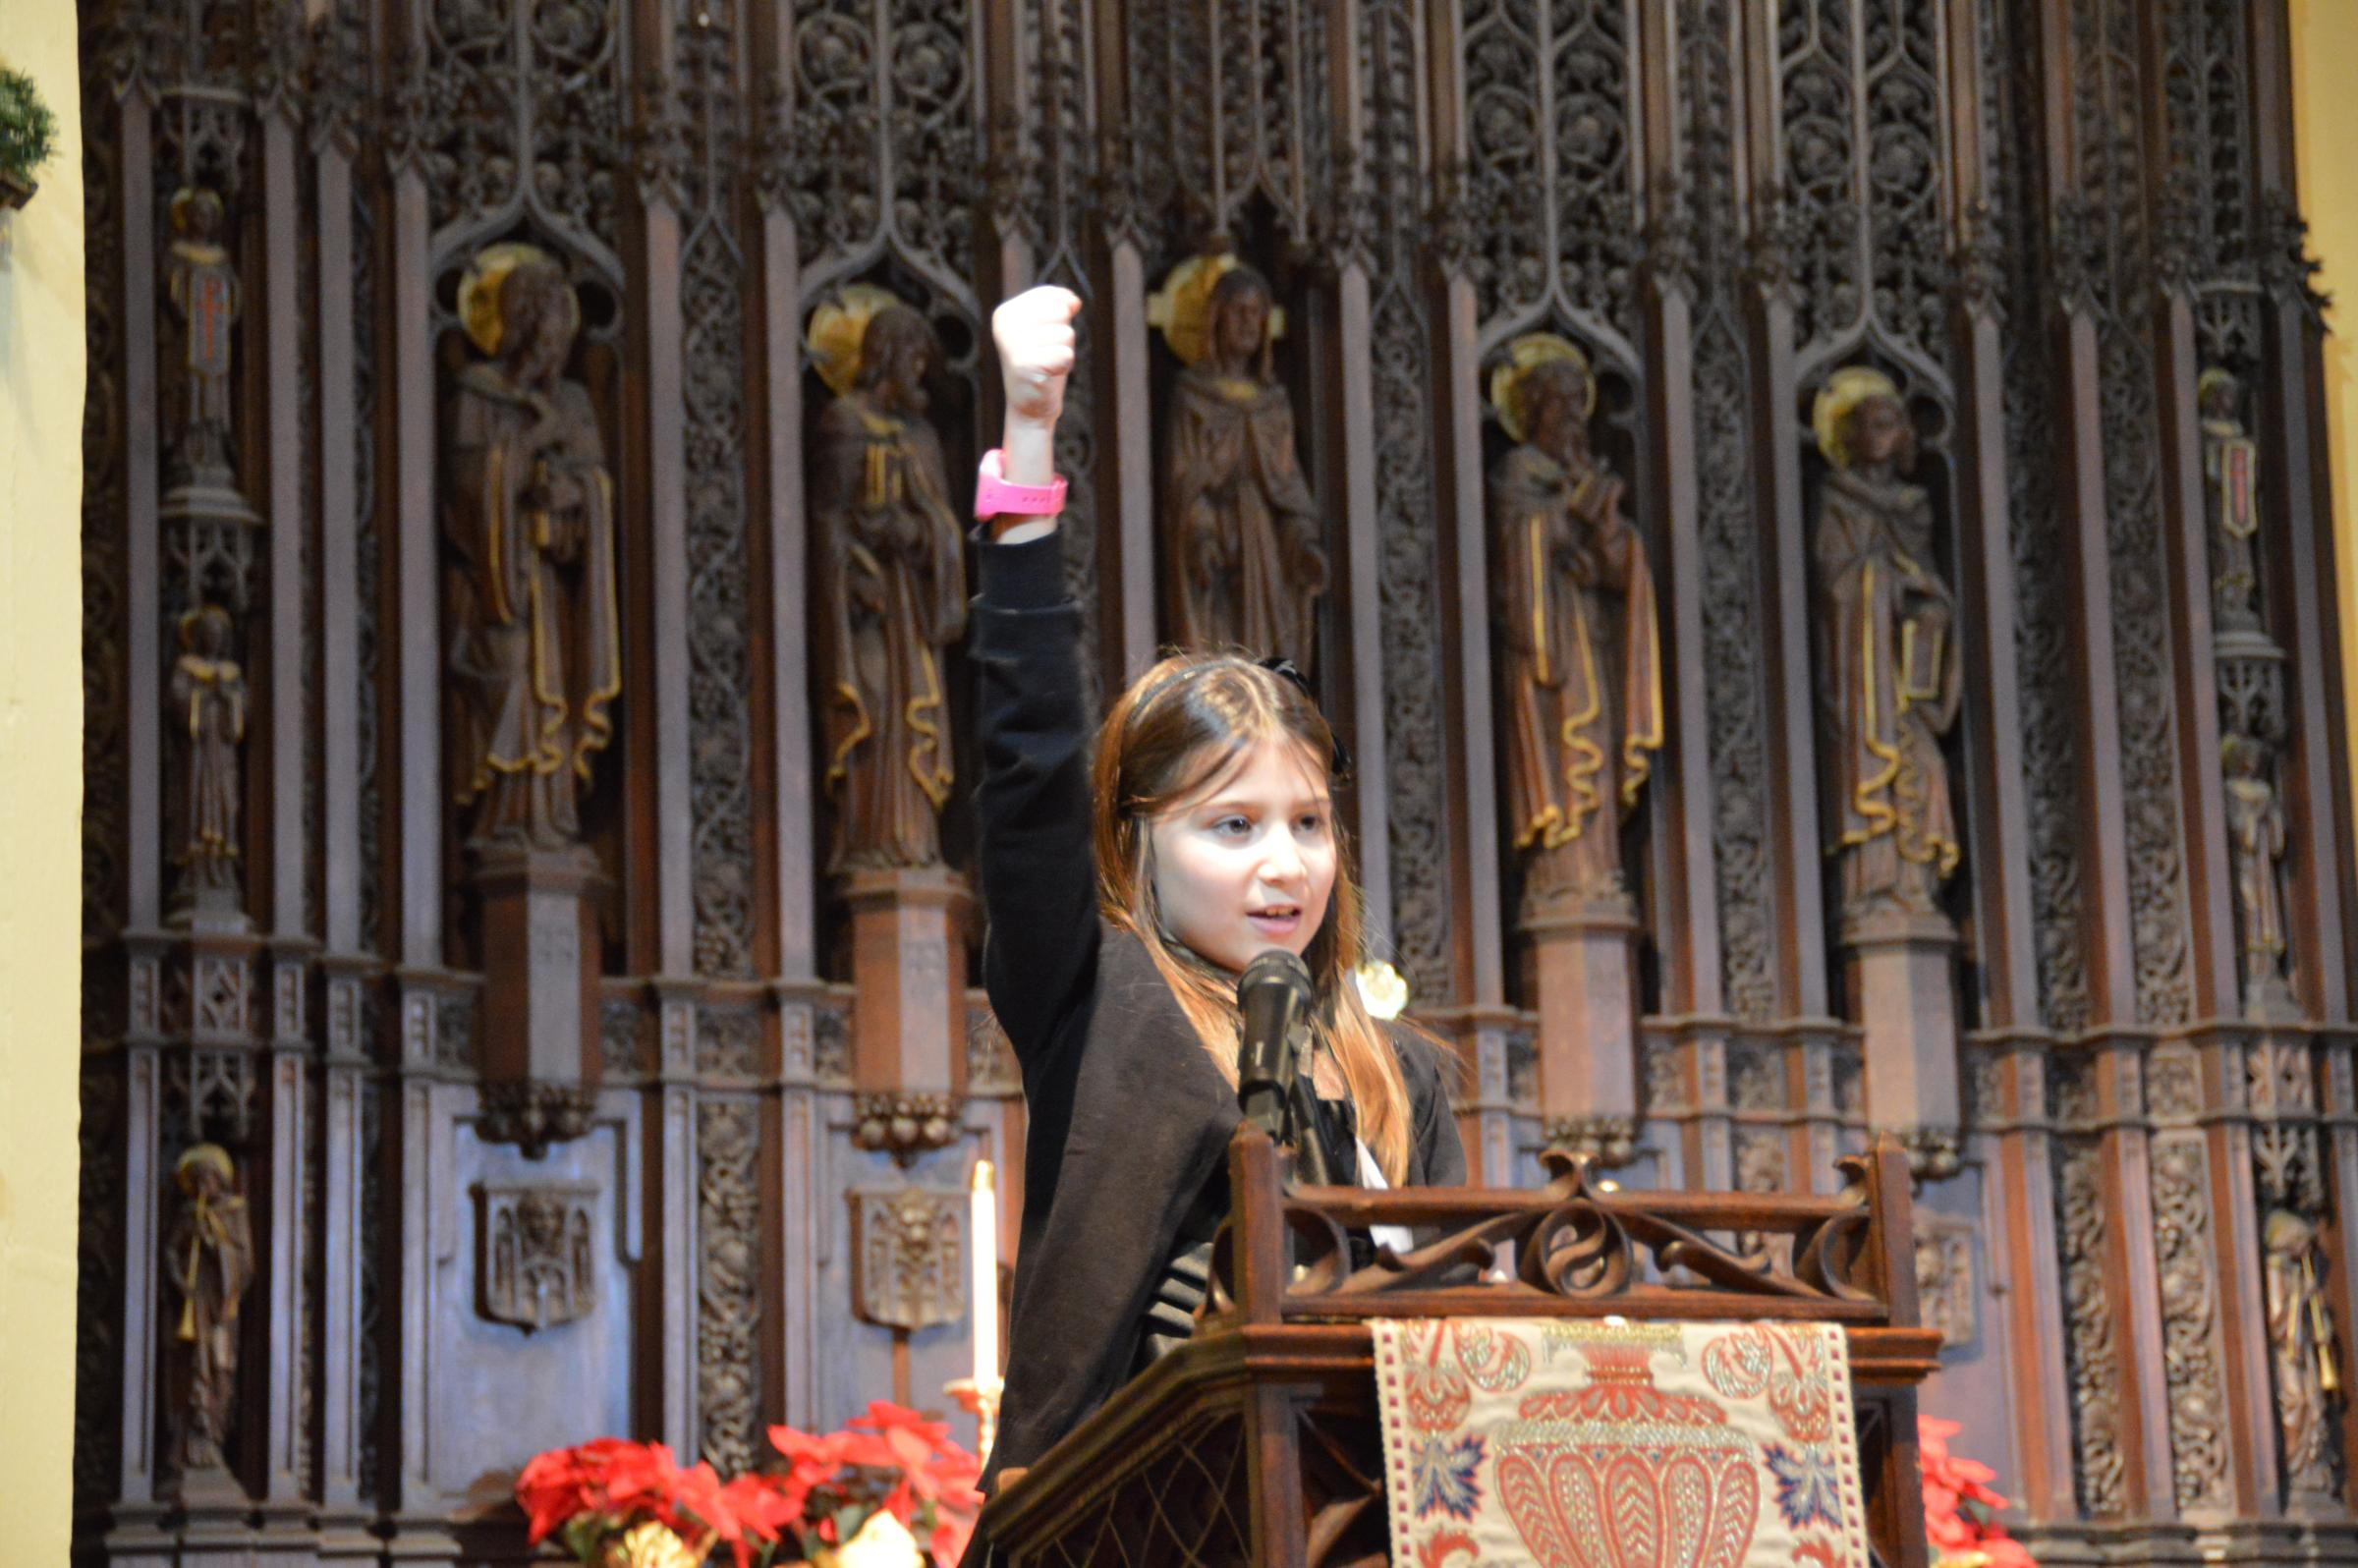 ohio students are recognized for speeches and work honoring martin third grader elena earley from columbus shared an essay praising dr martin luther king jr from the pulpit of trinity episcopal church on capitol square